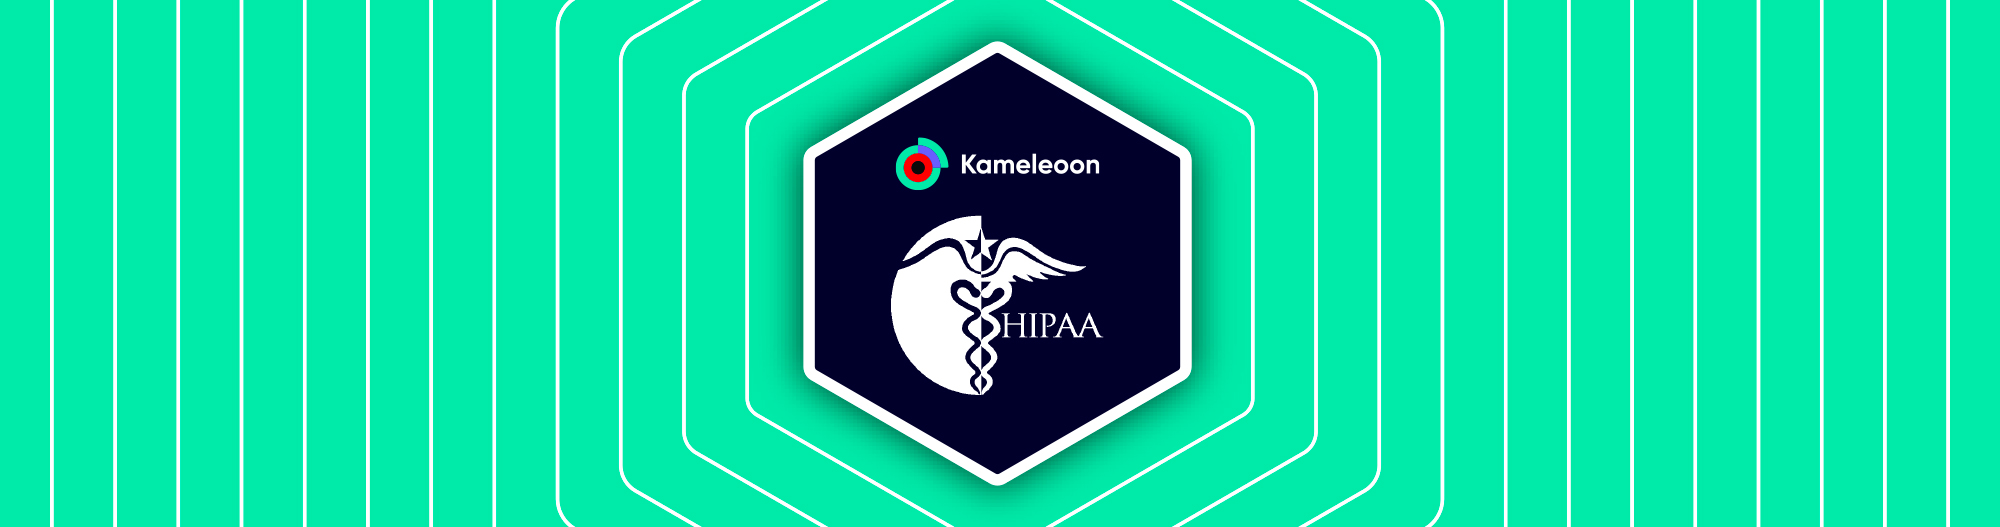 Kameleoon HIPAA compliance